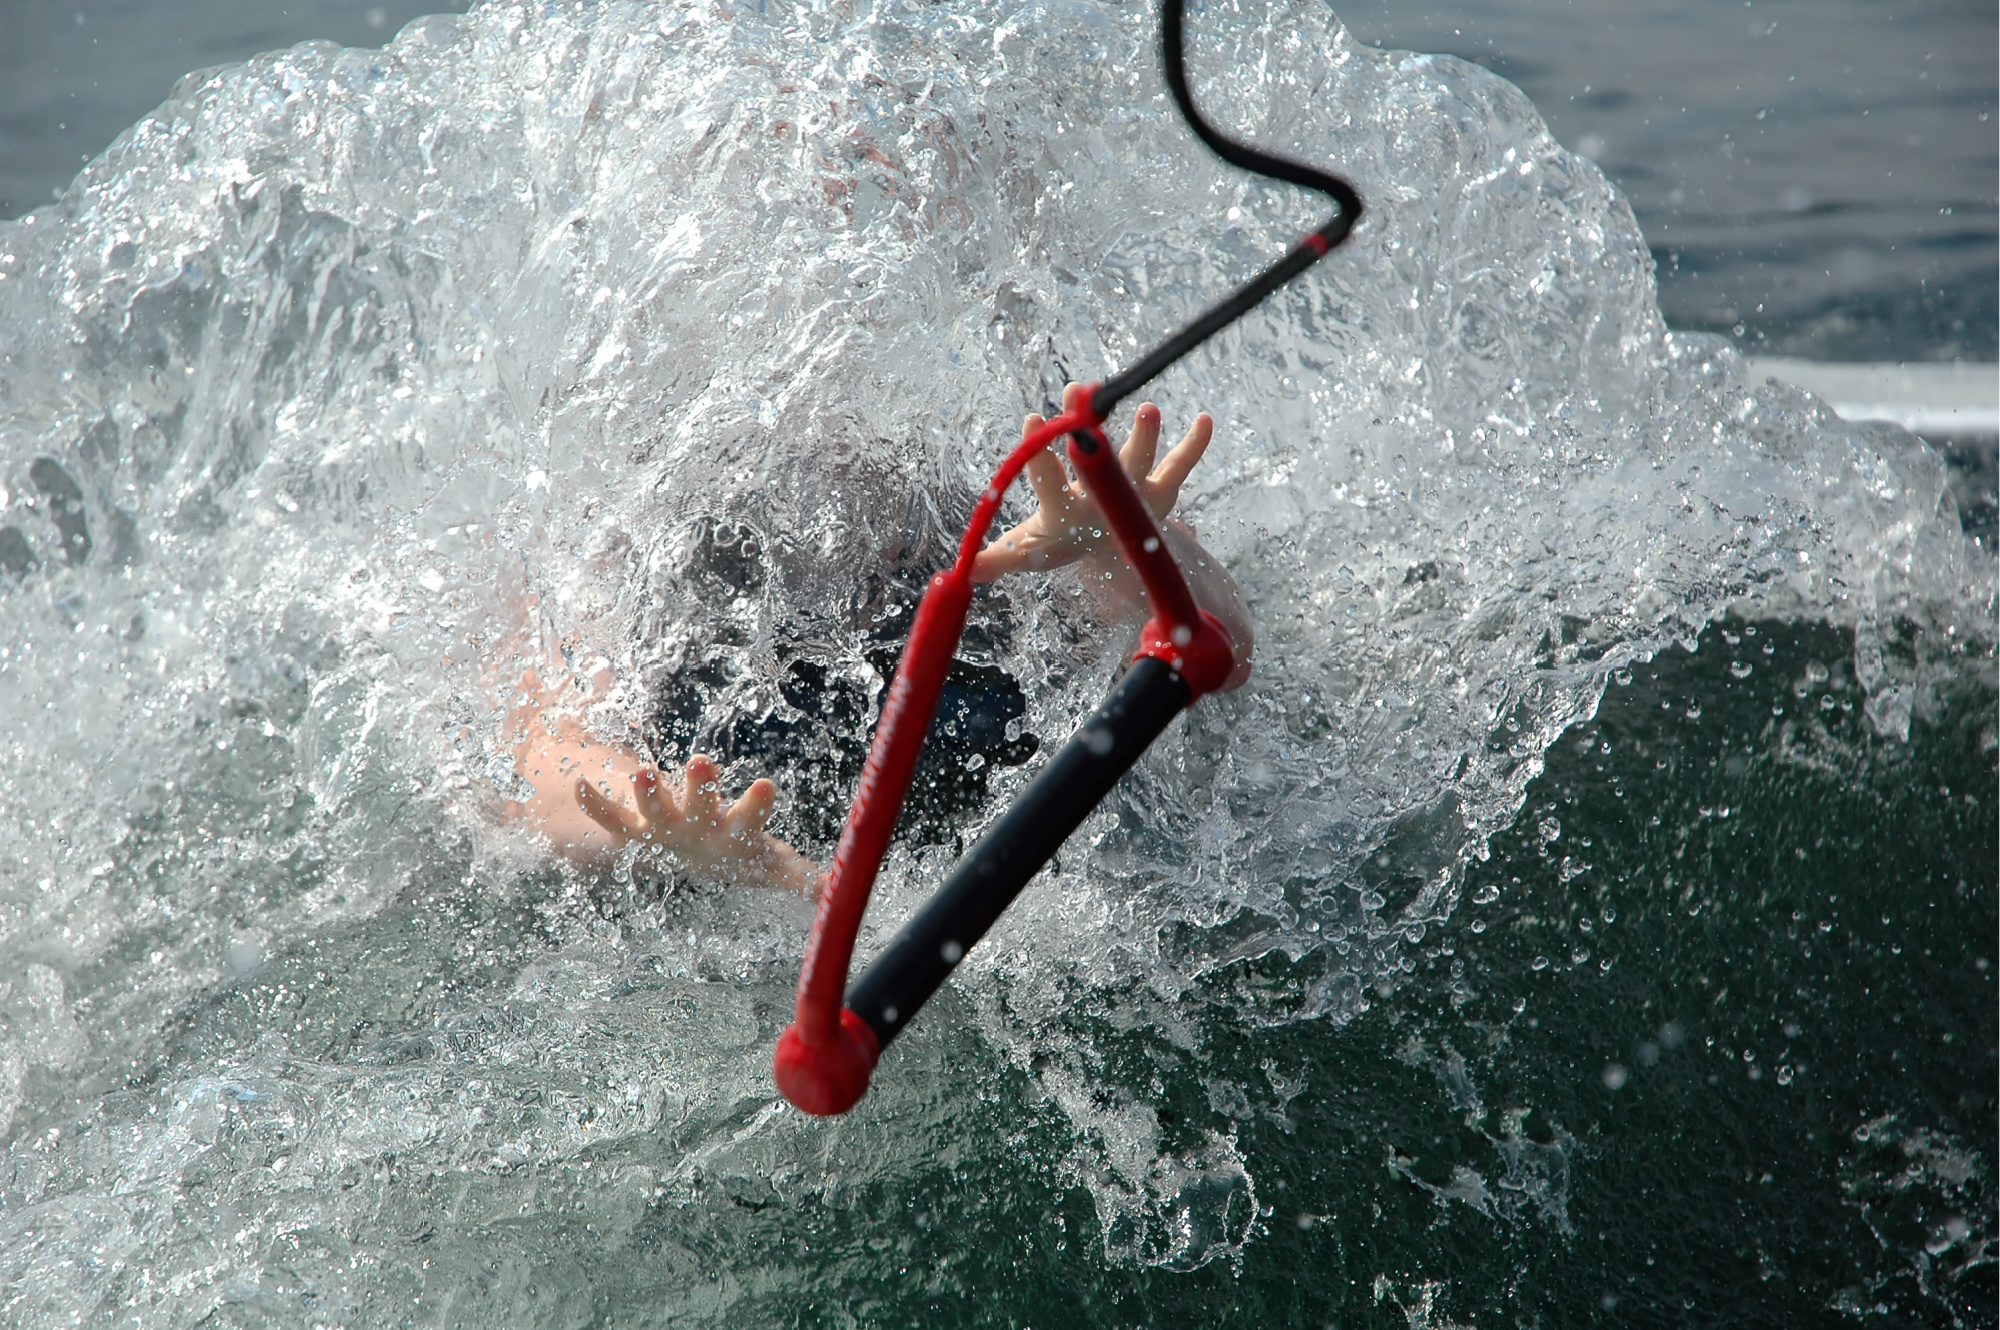 Rope being thrown to help drowning person.